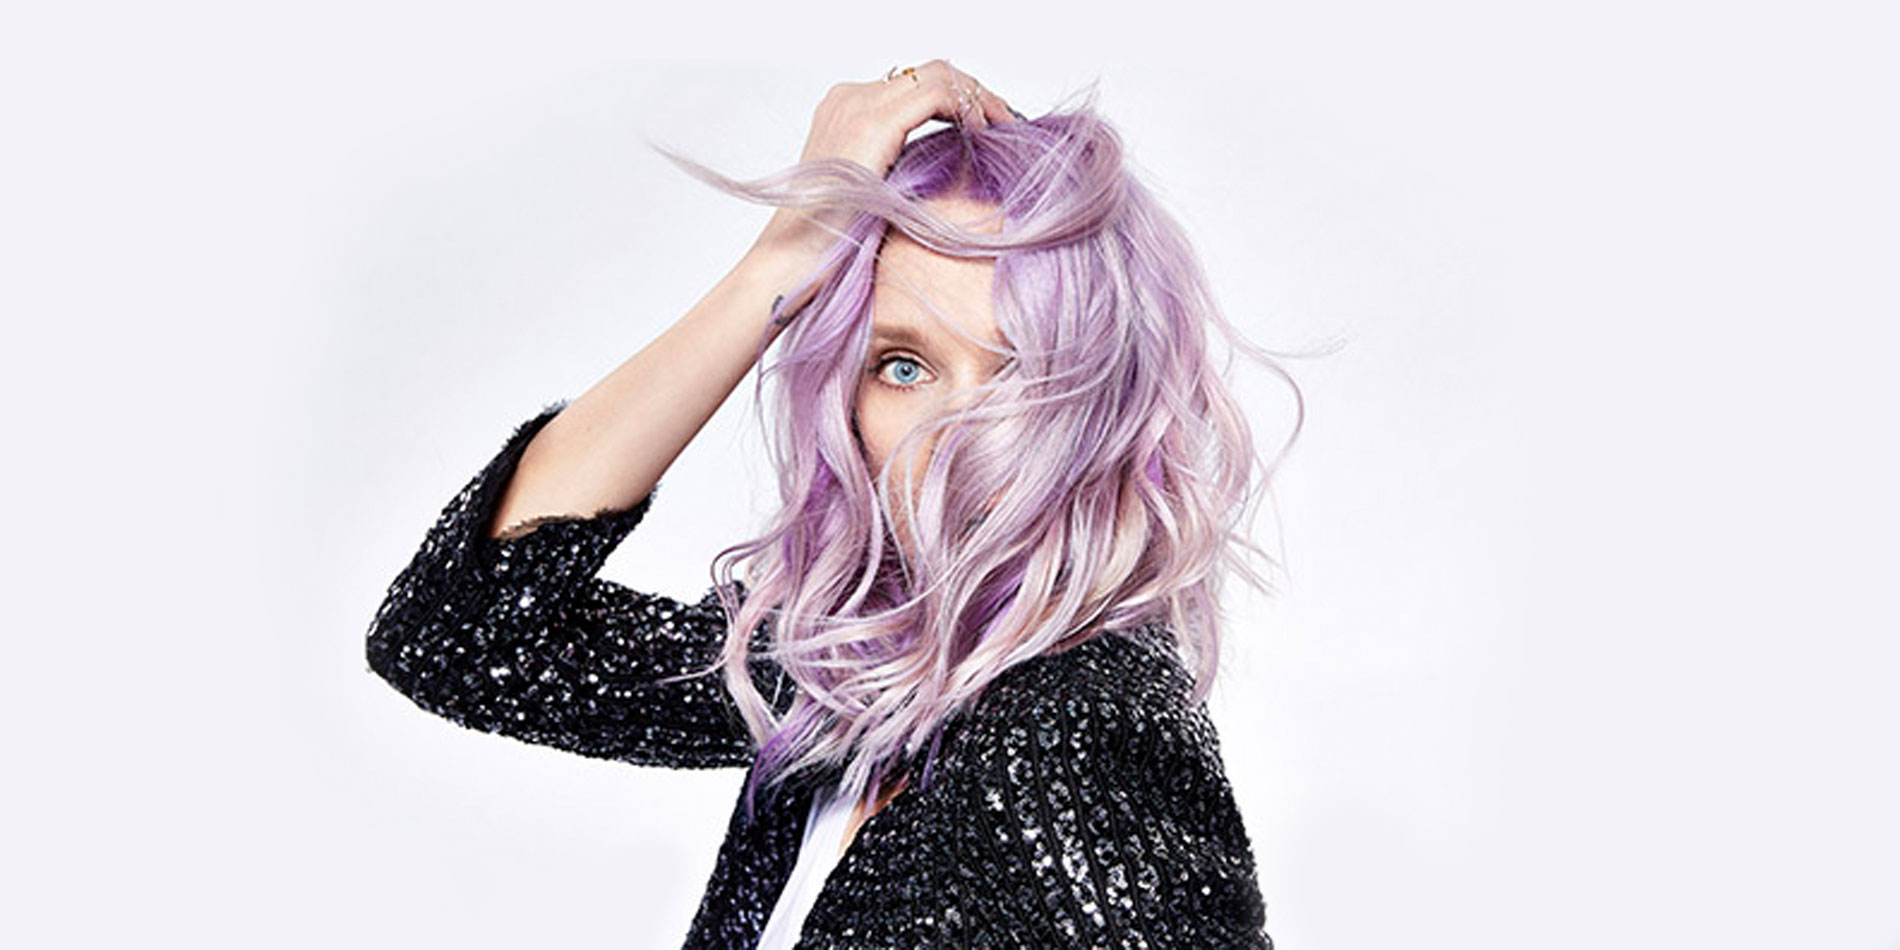 bold hair colours, mova hair salons, staines, virginia water, surrey